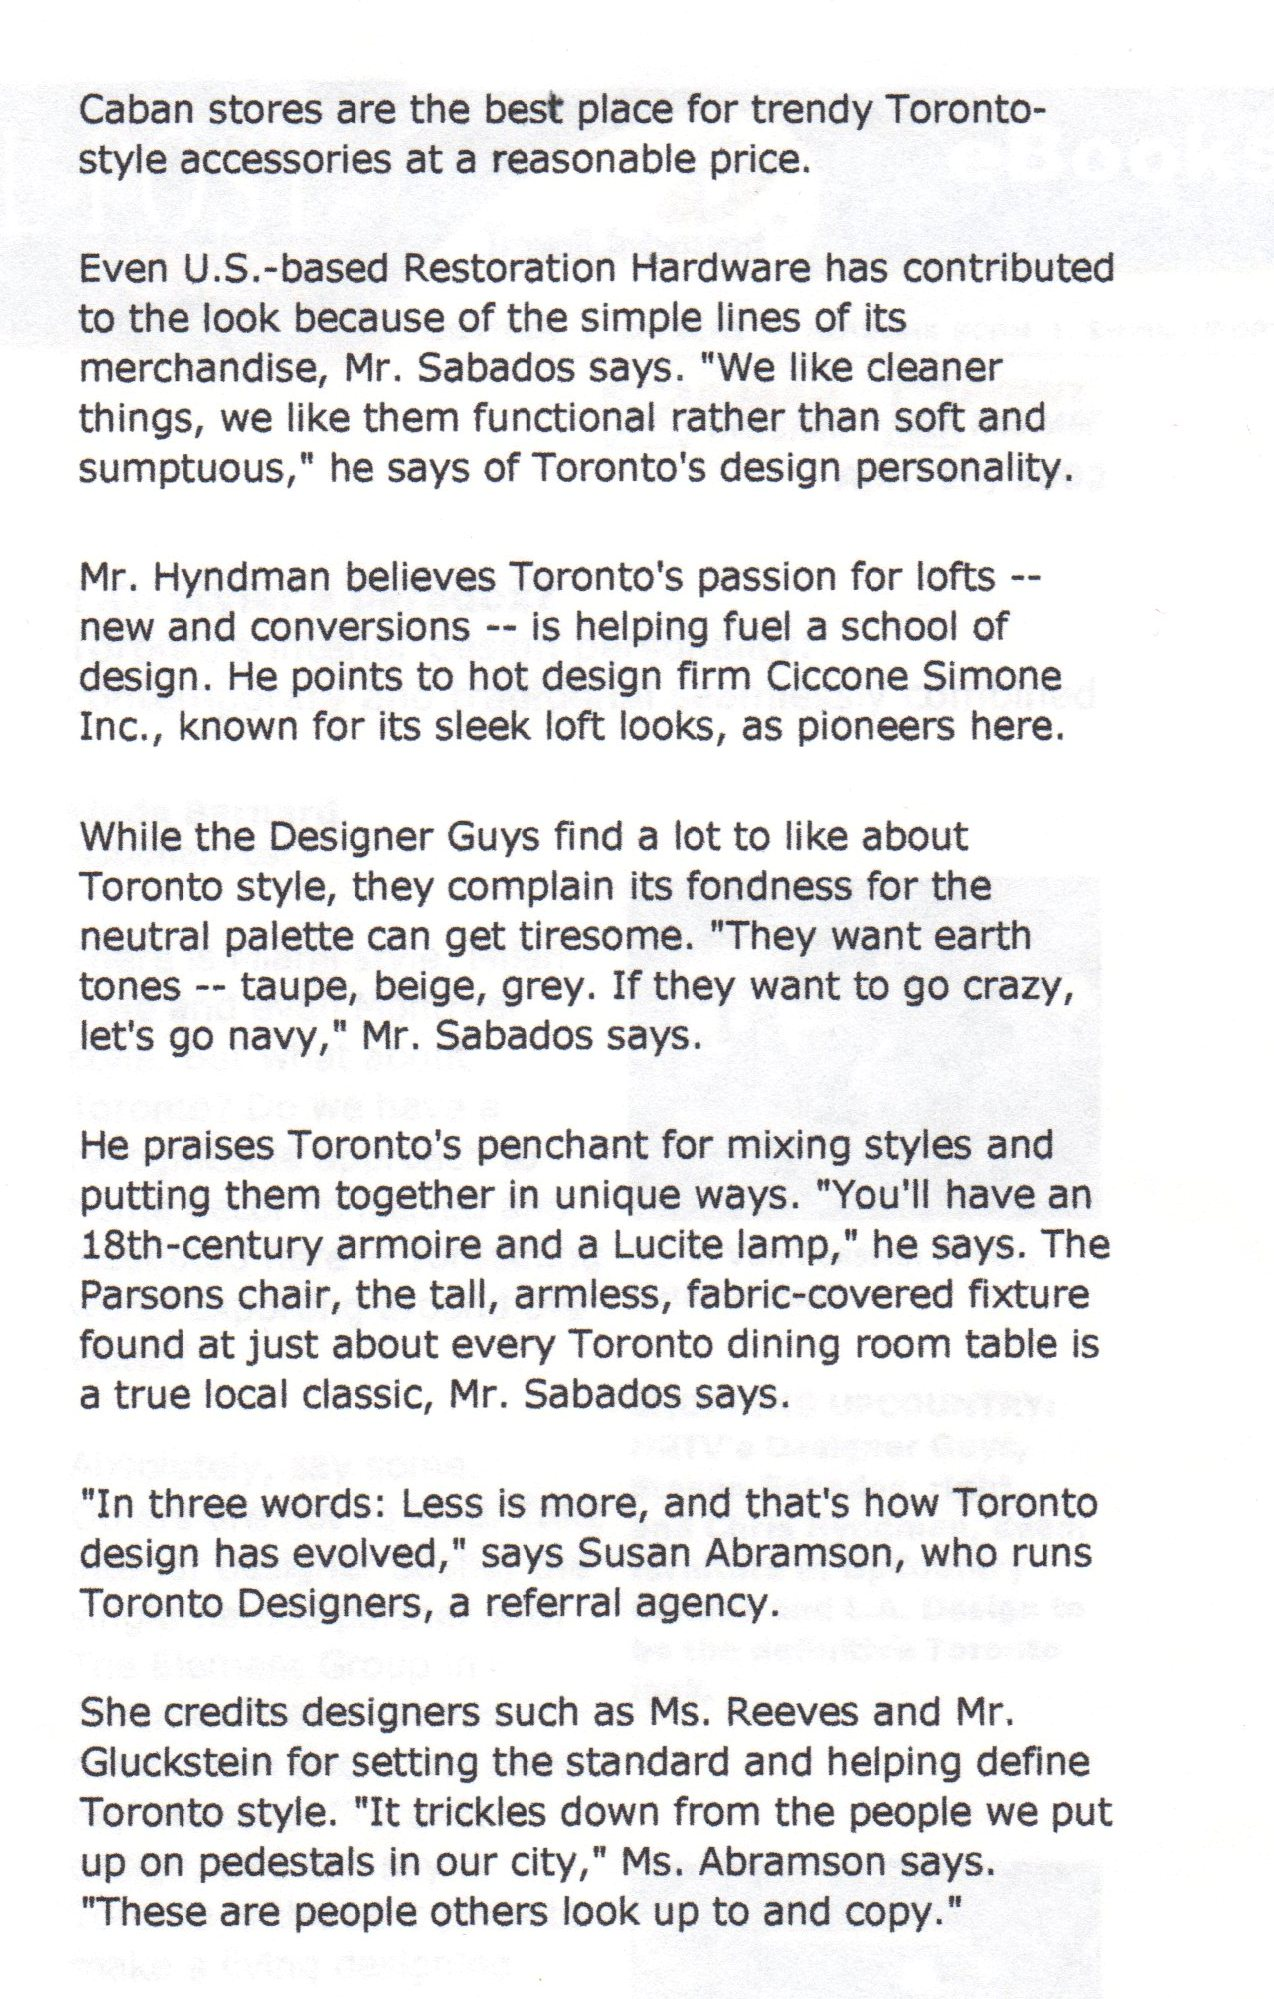 National Post Feature - Page 3 of 3